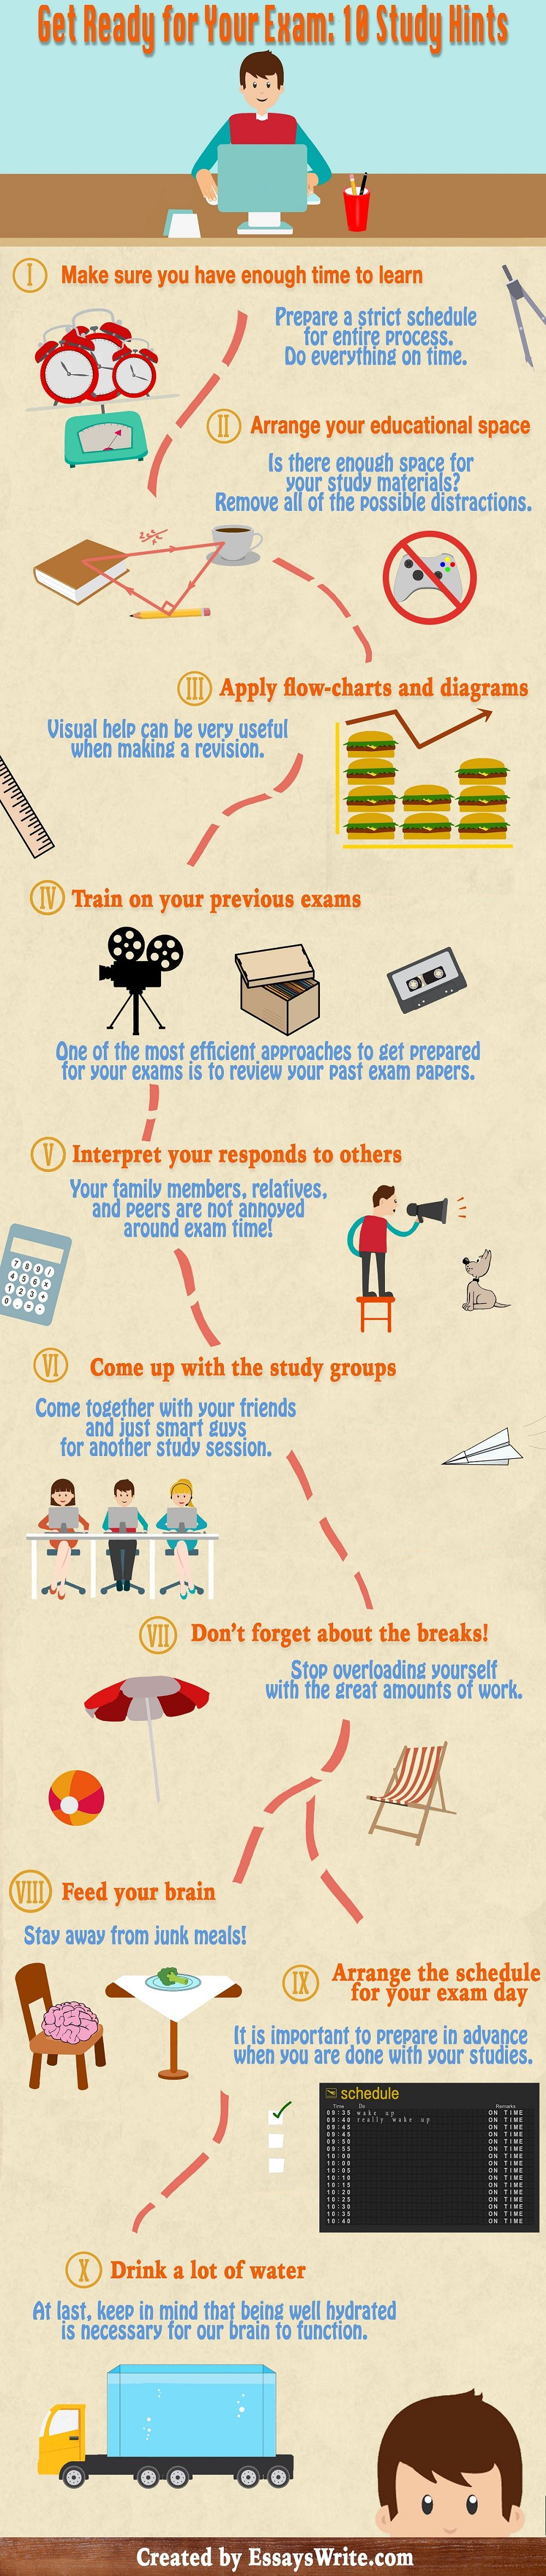 Effective Study Habits to Get Ready for Your Exam